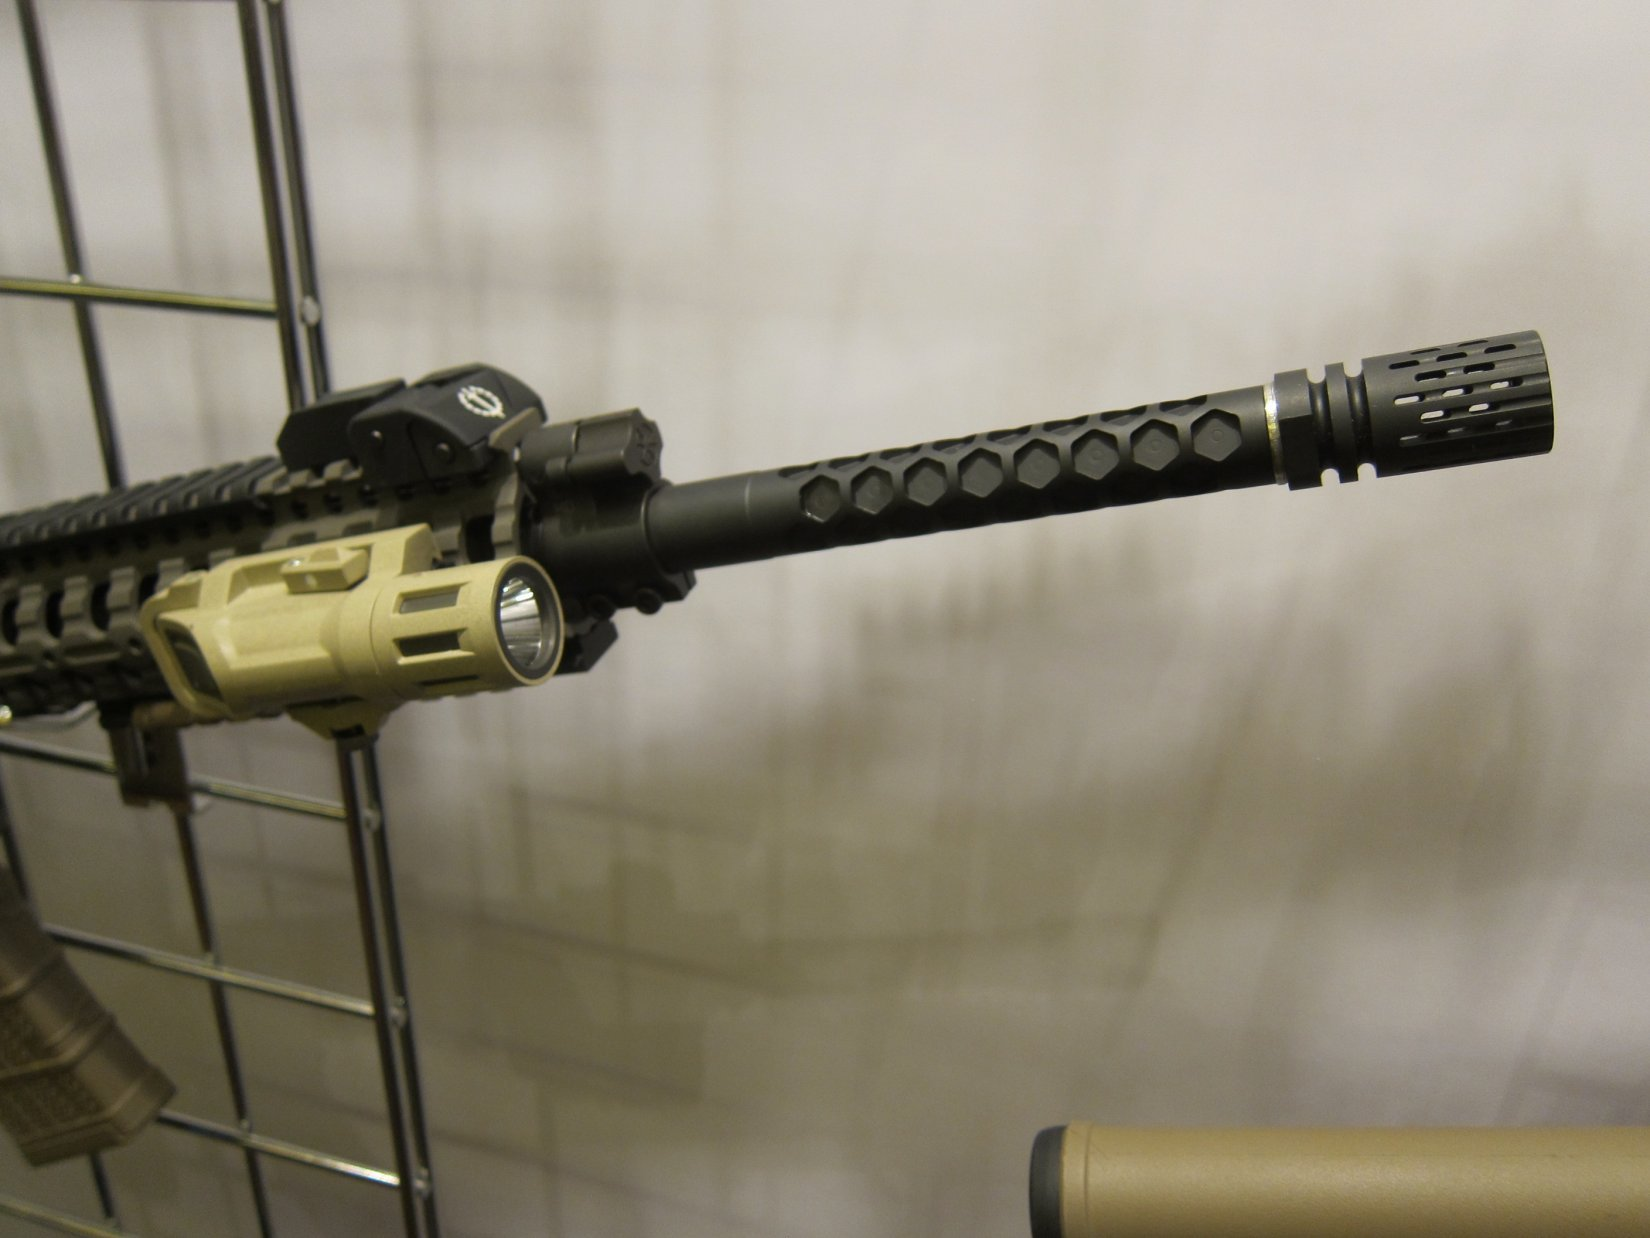 Legion Firearms LF-15d and LF-15c Tactical AR-15 Carbine/Rifle Packages with Hexagonally-Fluted/Dimpled Polygonal Barrel, Phase 5 Tactical Ambi Battle Latch/Charging Handle and BattleComp 2.0 SCV Compensator–and Custom Legion LF-P45 .45 ACP Tactical 1911 Pistol! (Video!)